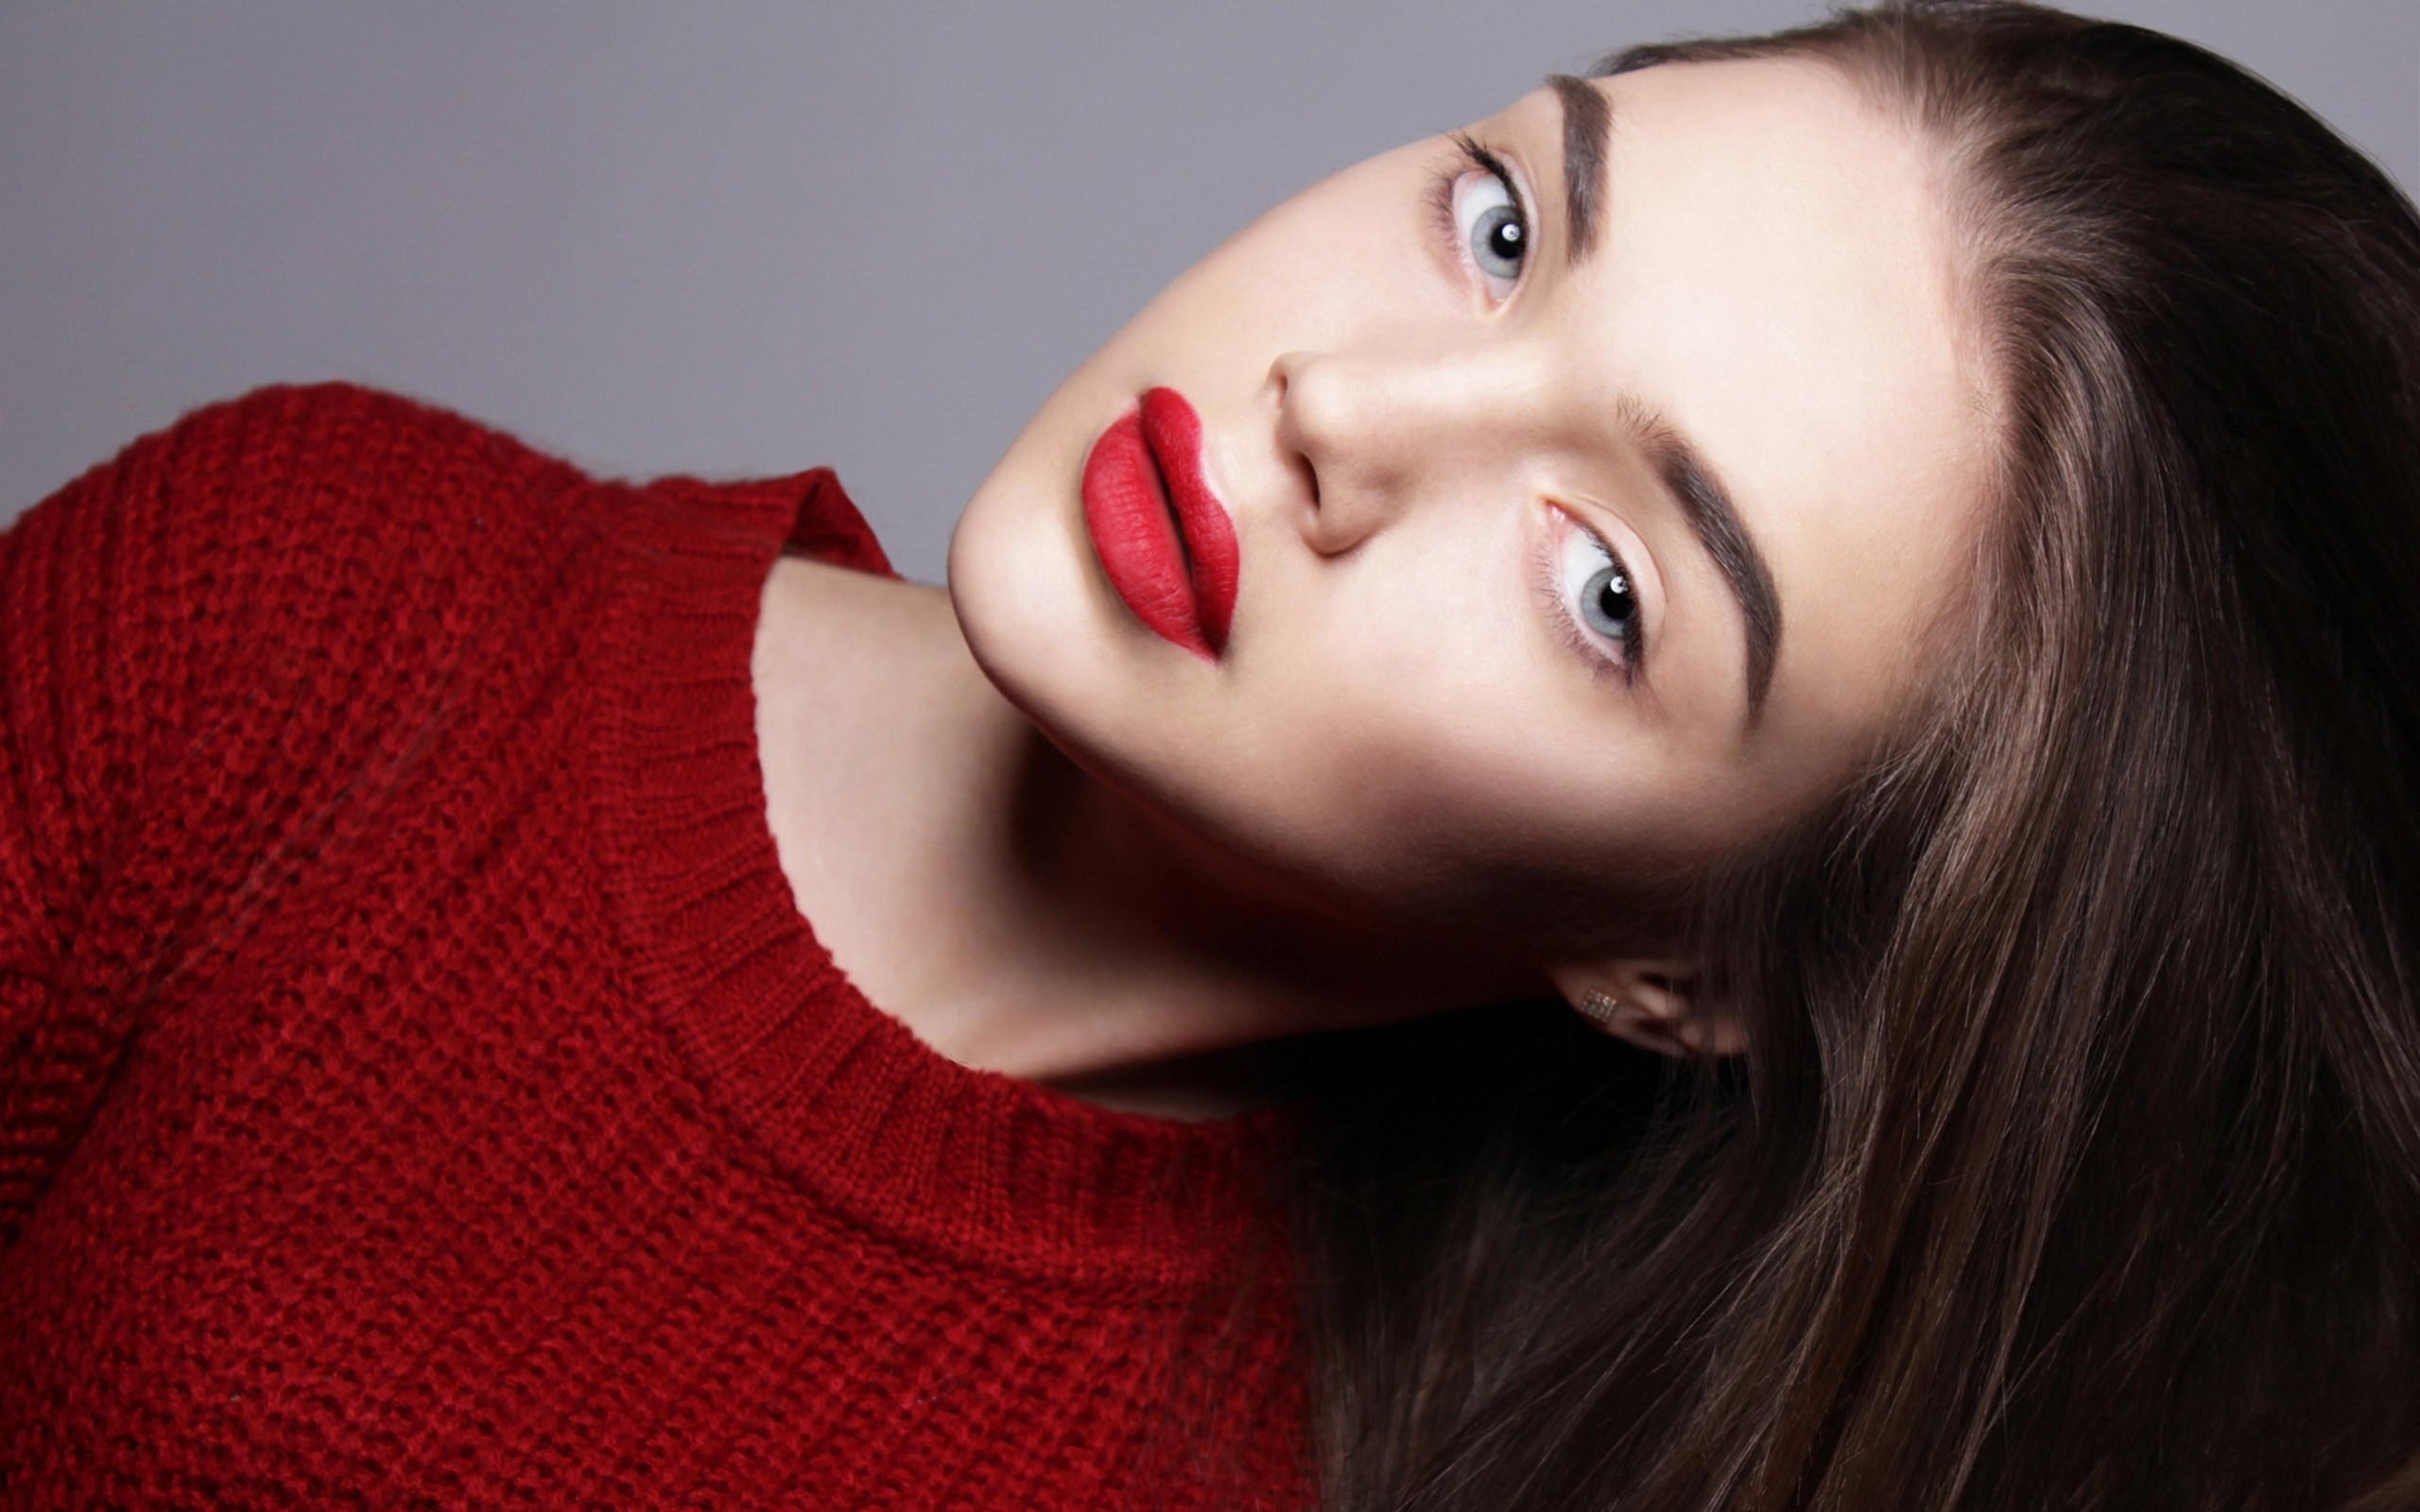 Red Lips Wallpapers 73 Images